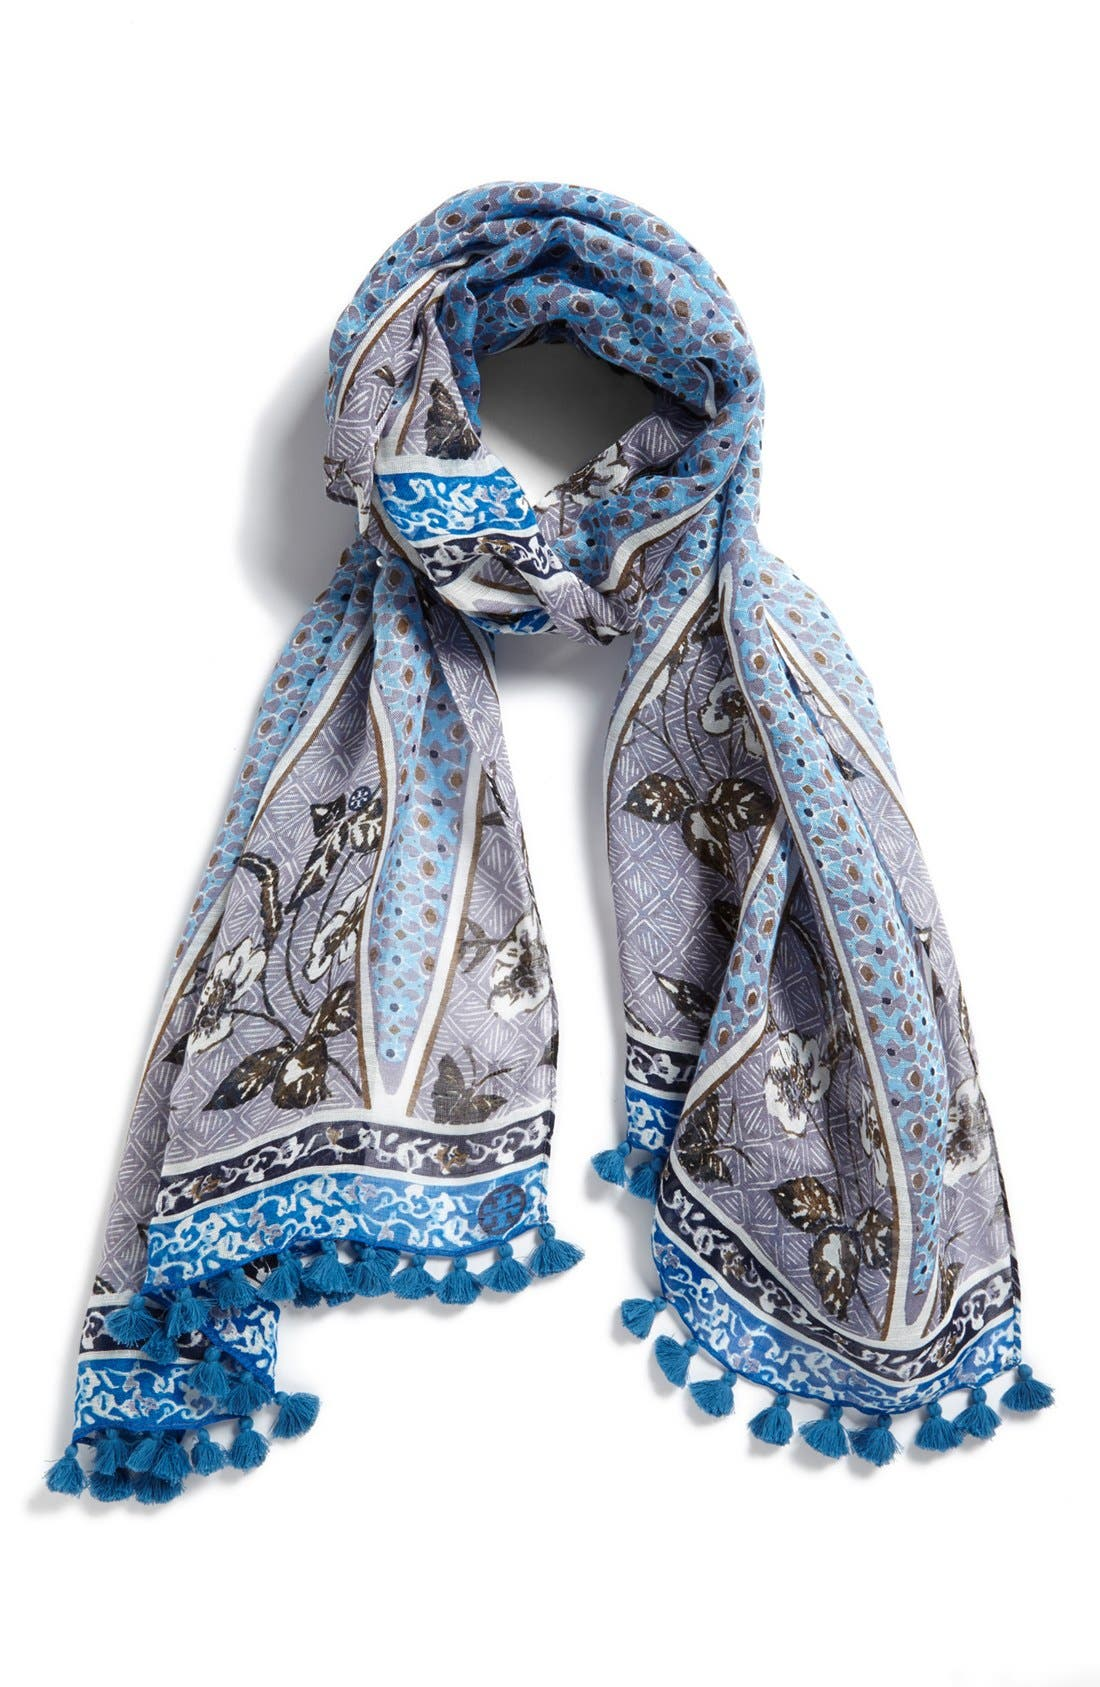 Main Image - Tory Burch 'Olea' Floral Mix Pompom Scarf